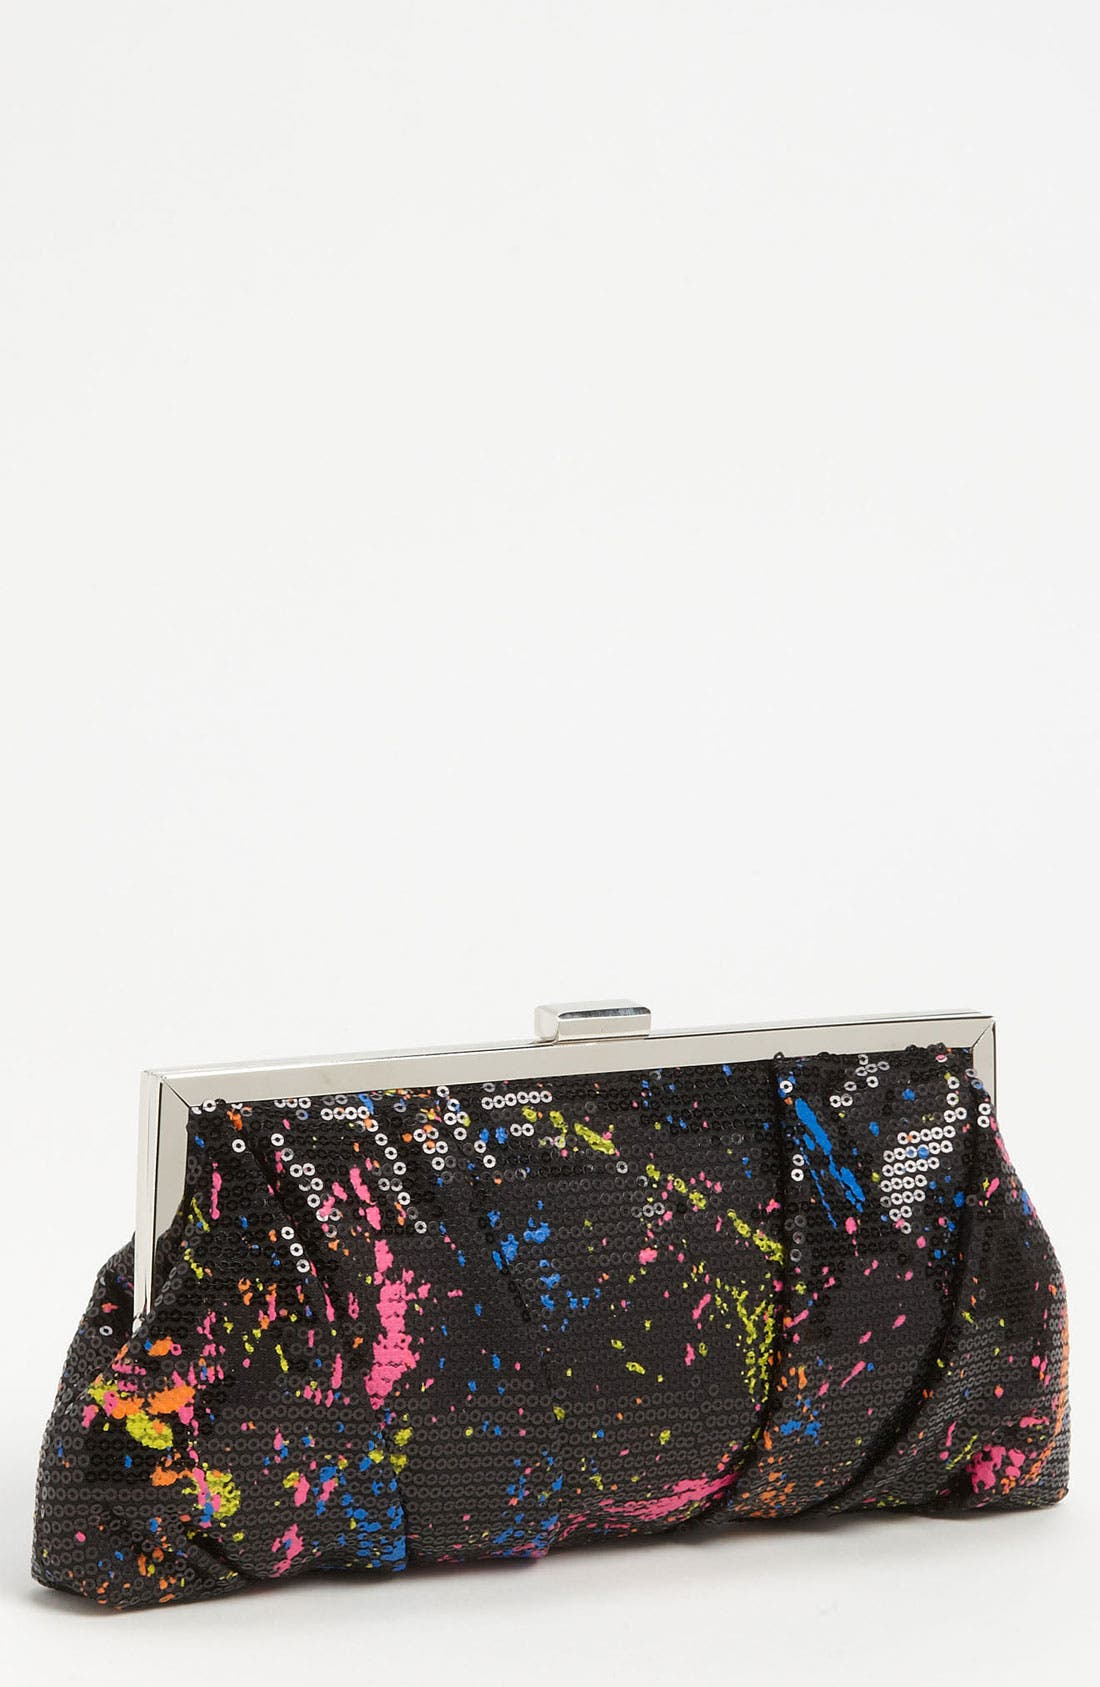 Alternate Image 1 Selected - Jessica McClintock 'Graffiti' Clutch